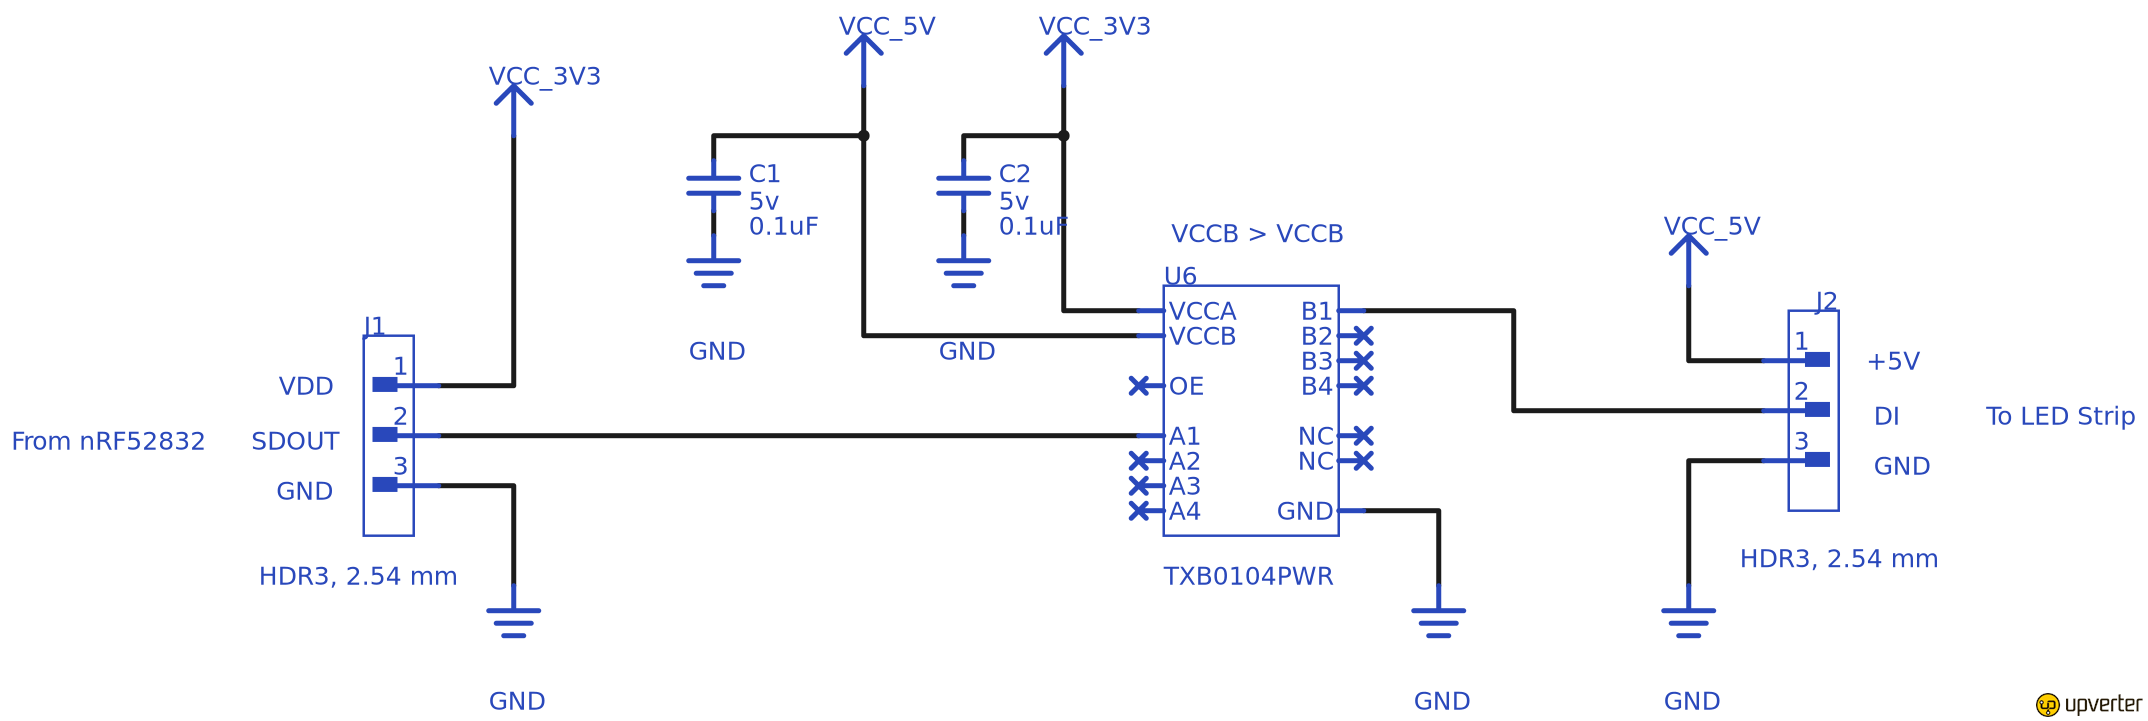 Bluetooth Controlled Led Light Strip Part 1 Of 2 Circuit Diagram 5v Power Supply Ensure The Have Enough Current For Leds N54tfampaspjy2nd73hd